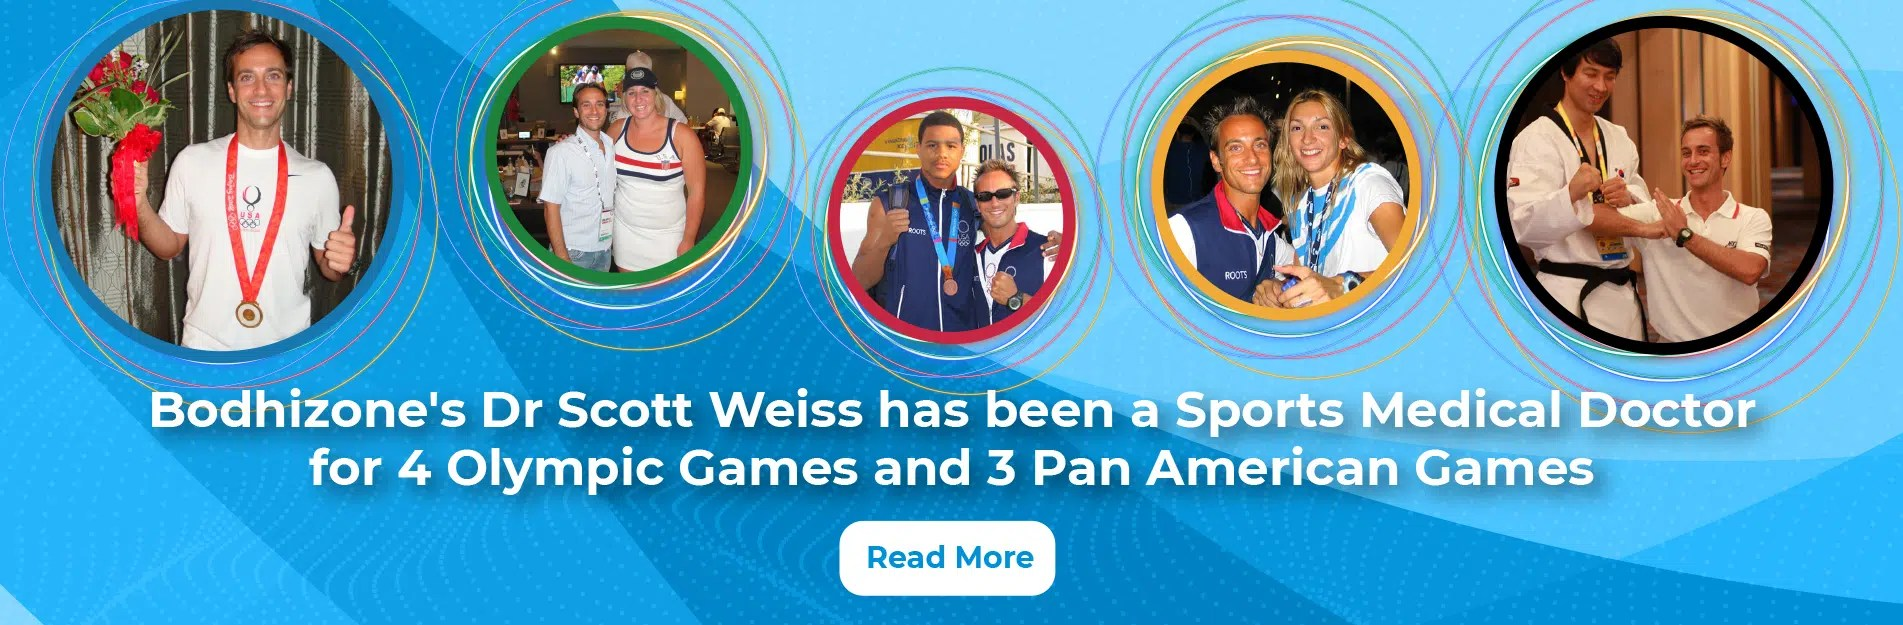 Bodhizone Physical Therapy NYC's Dr Scott Weiss at various Olympic Games